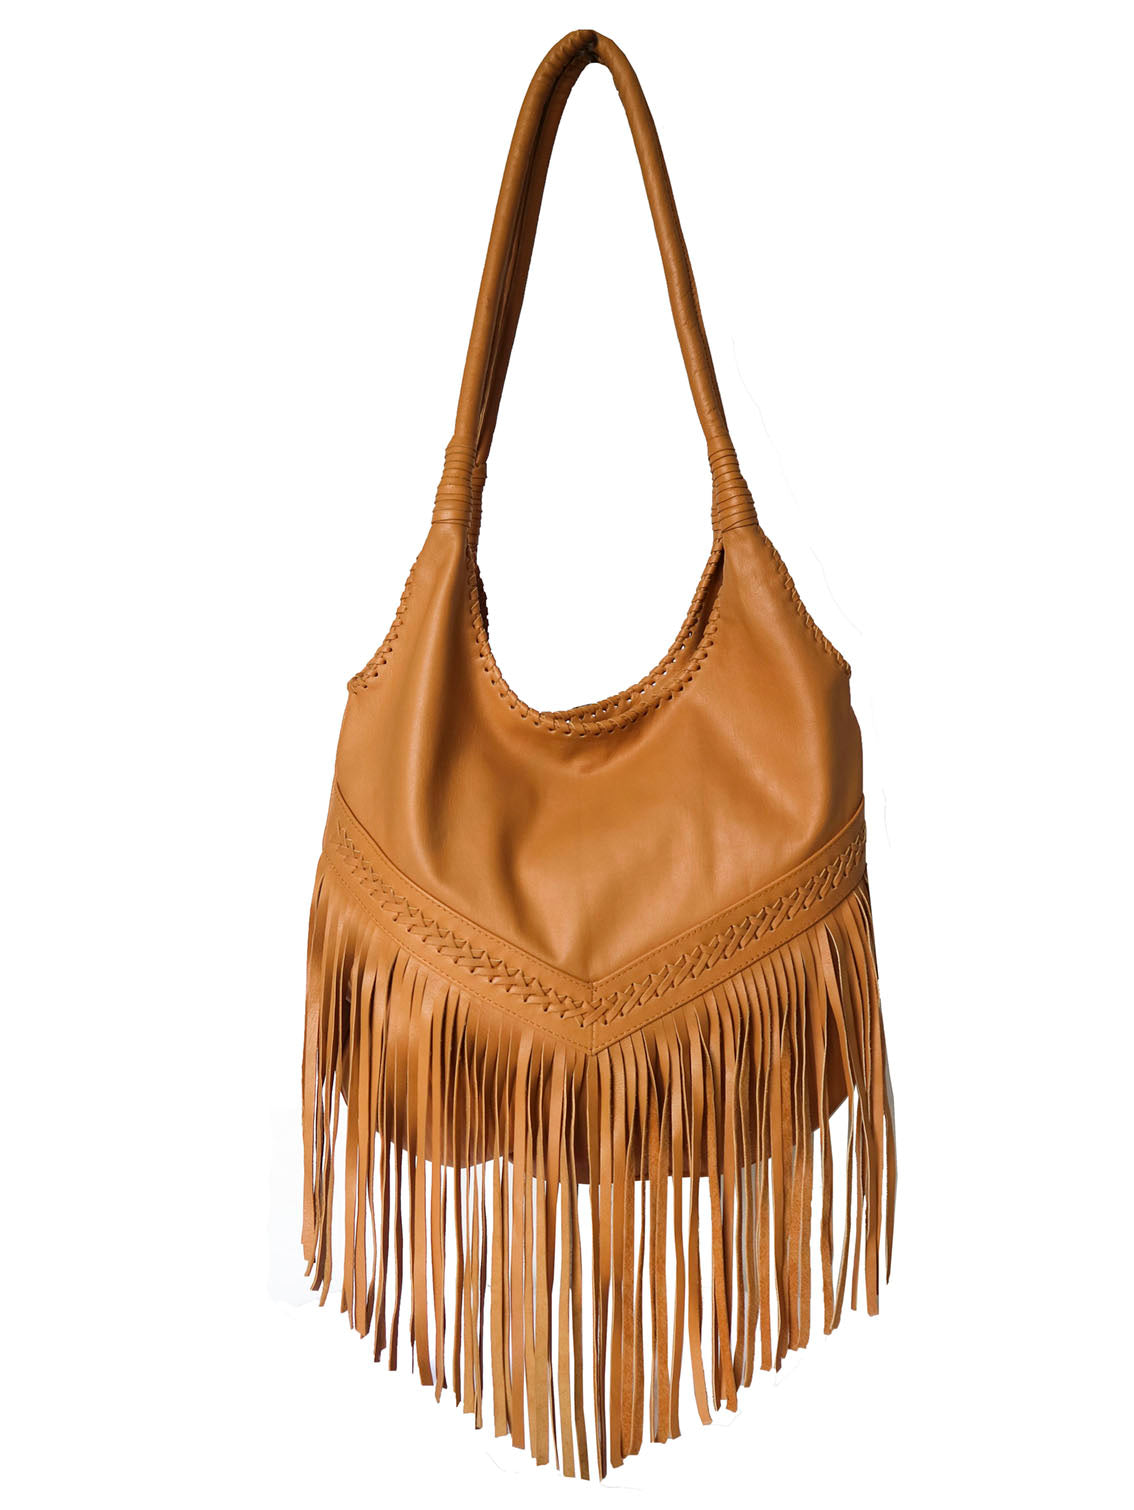 Fringed Hobo Slouch Leather Bag - Tan